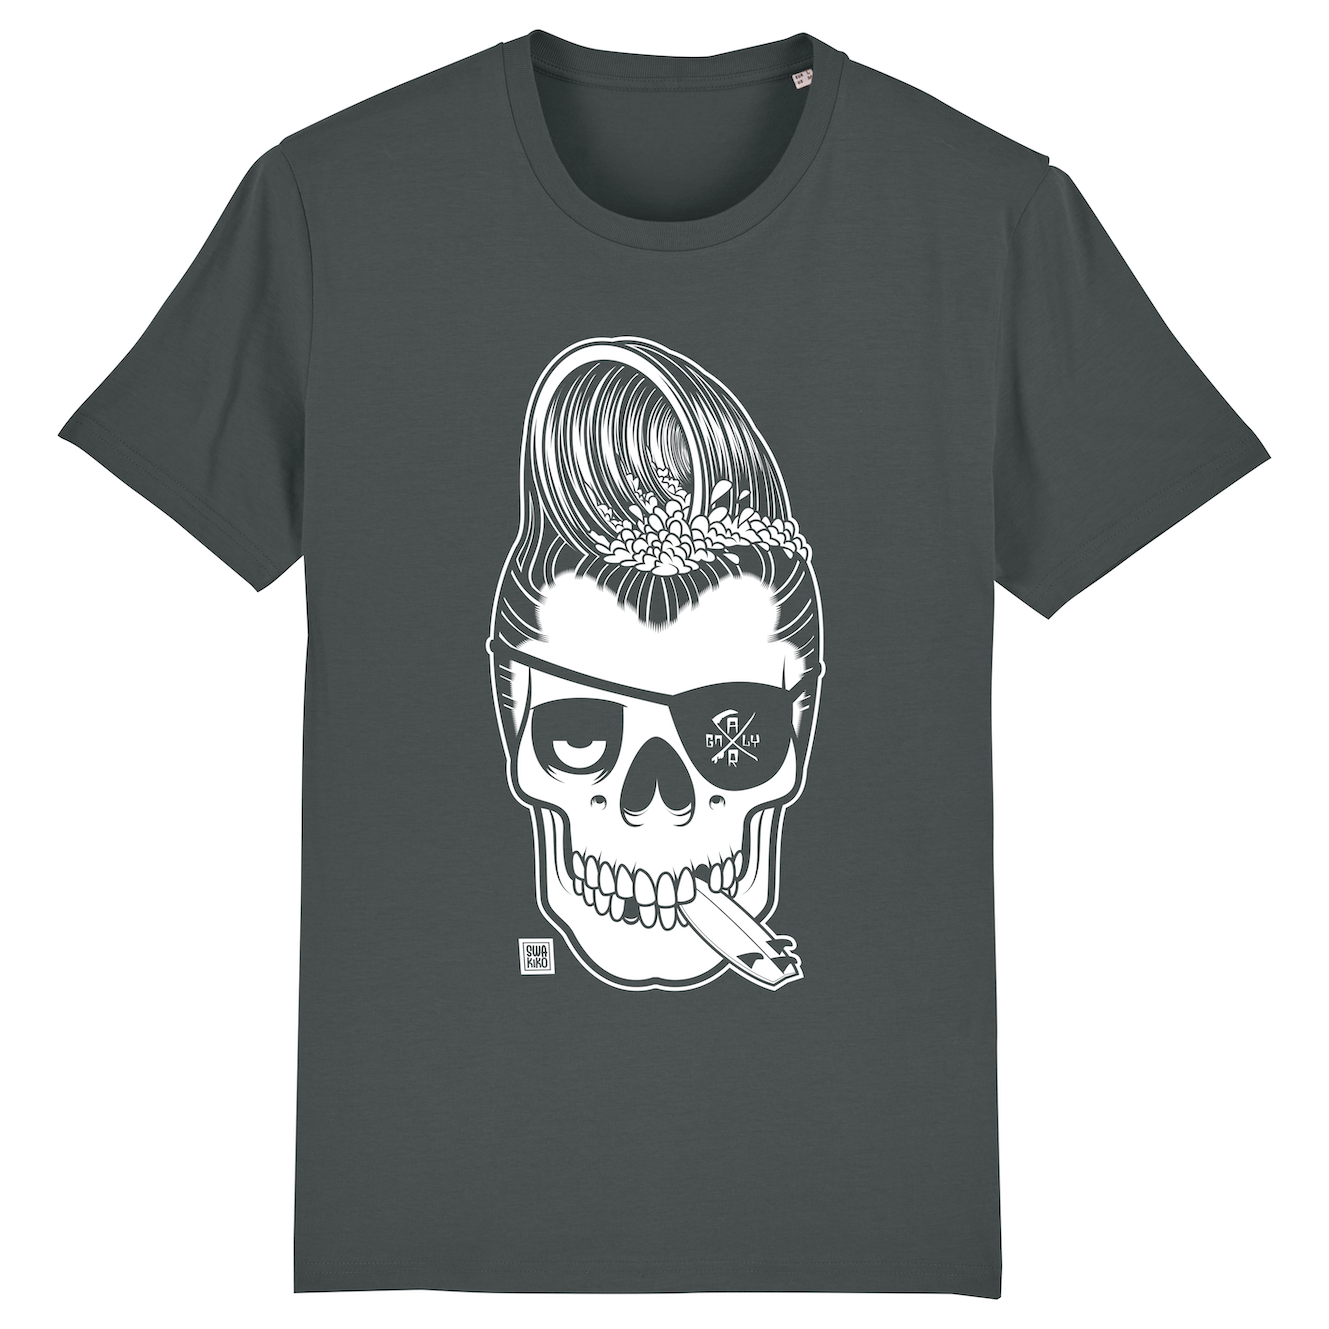 Surf T-shirt men anthracite, Haole Surfer